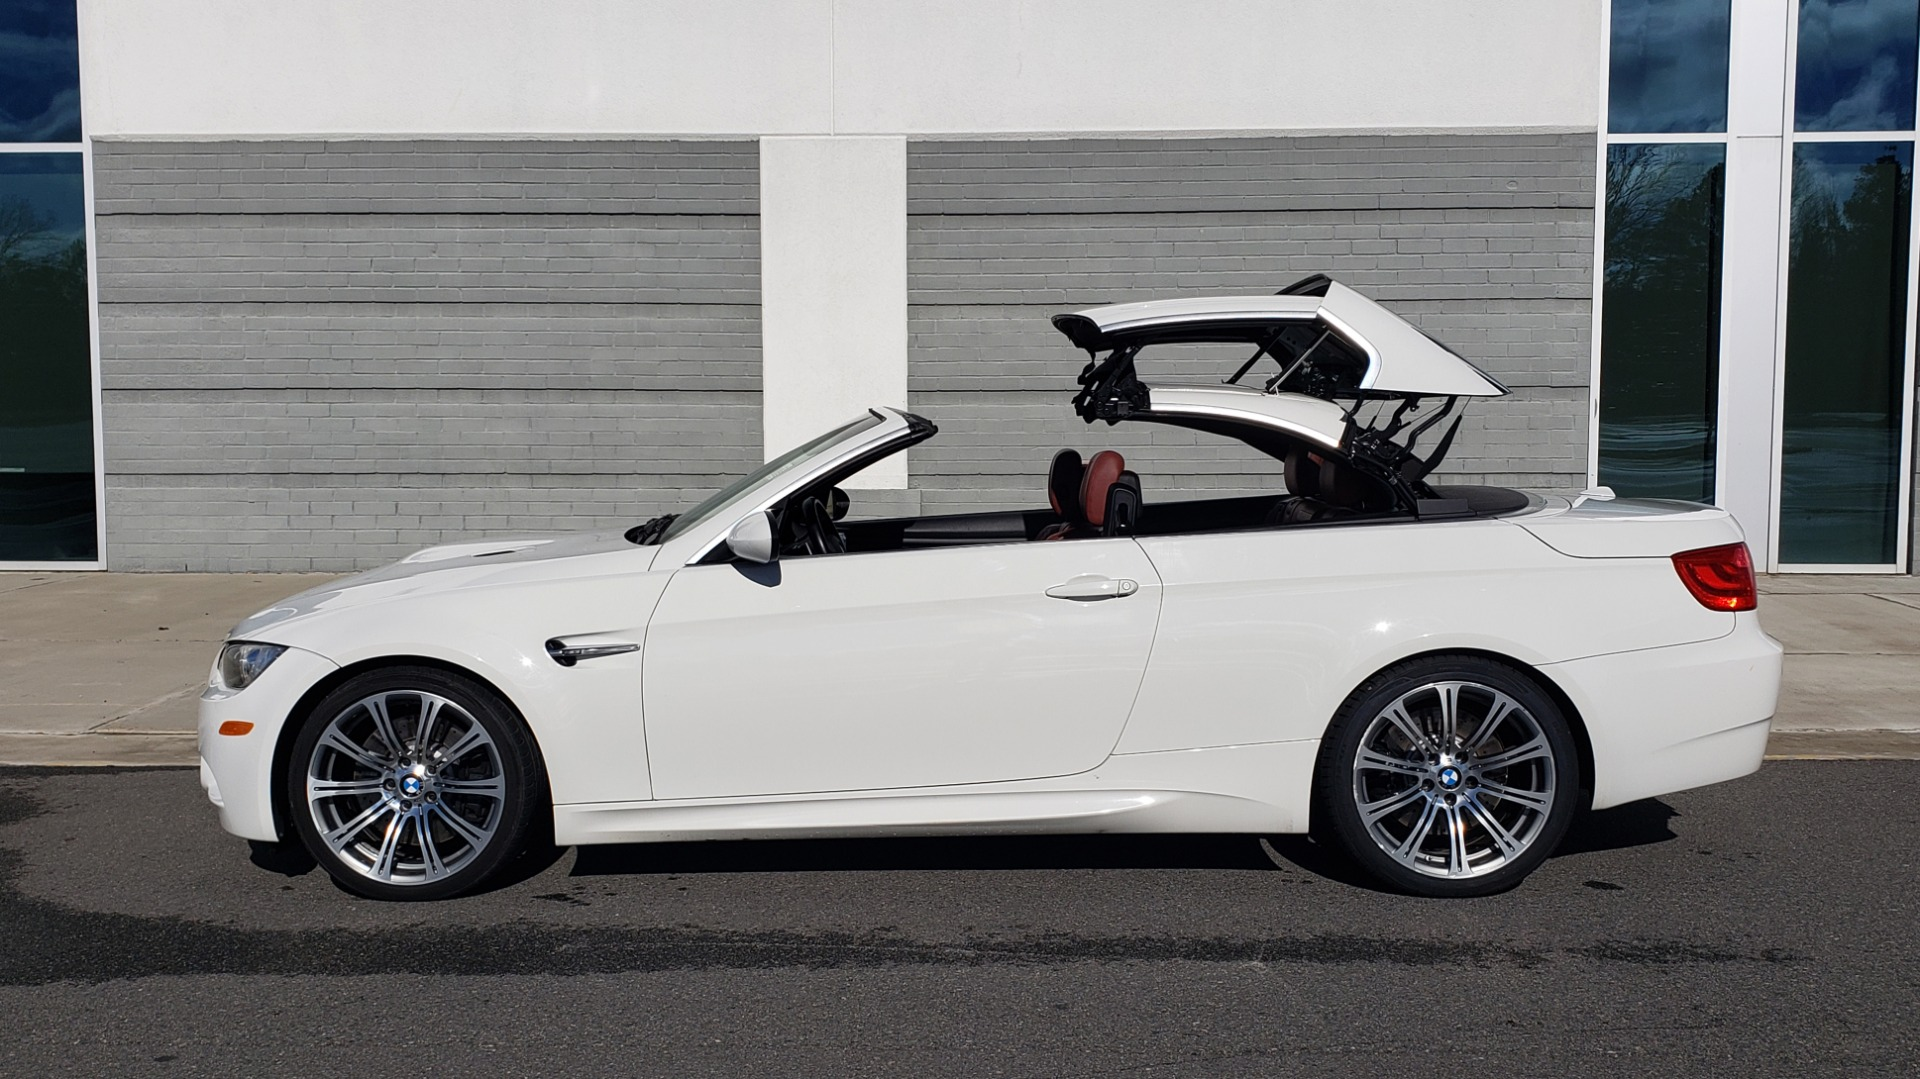 Used 2012 BMW M3 CONVERTIBLE / PREM PKG / NAV / M-DOUBLE CLUTCH AUTOMATIC for sale Sold at Formula Imports in Charlotte NC 28227 11